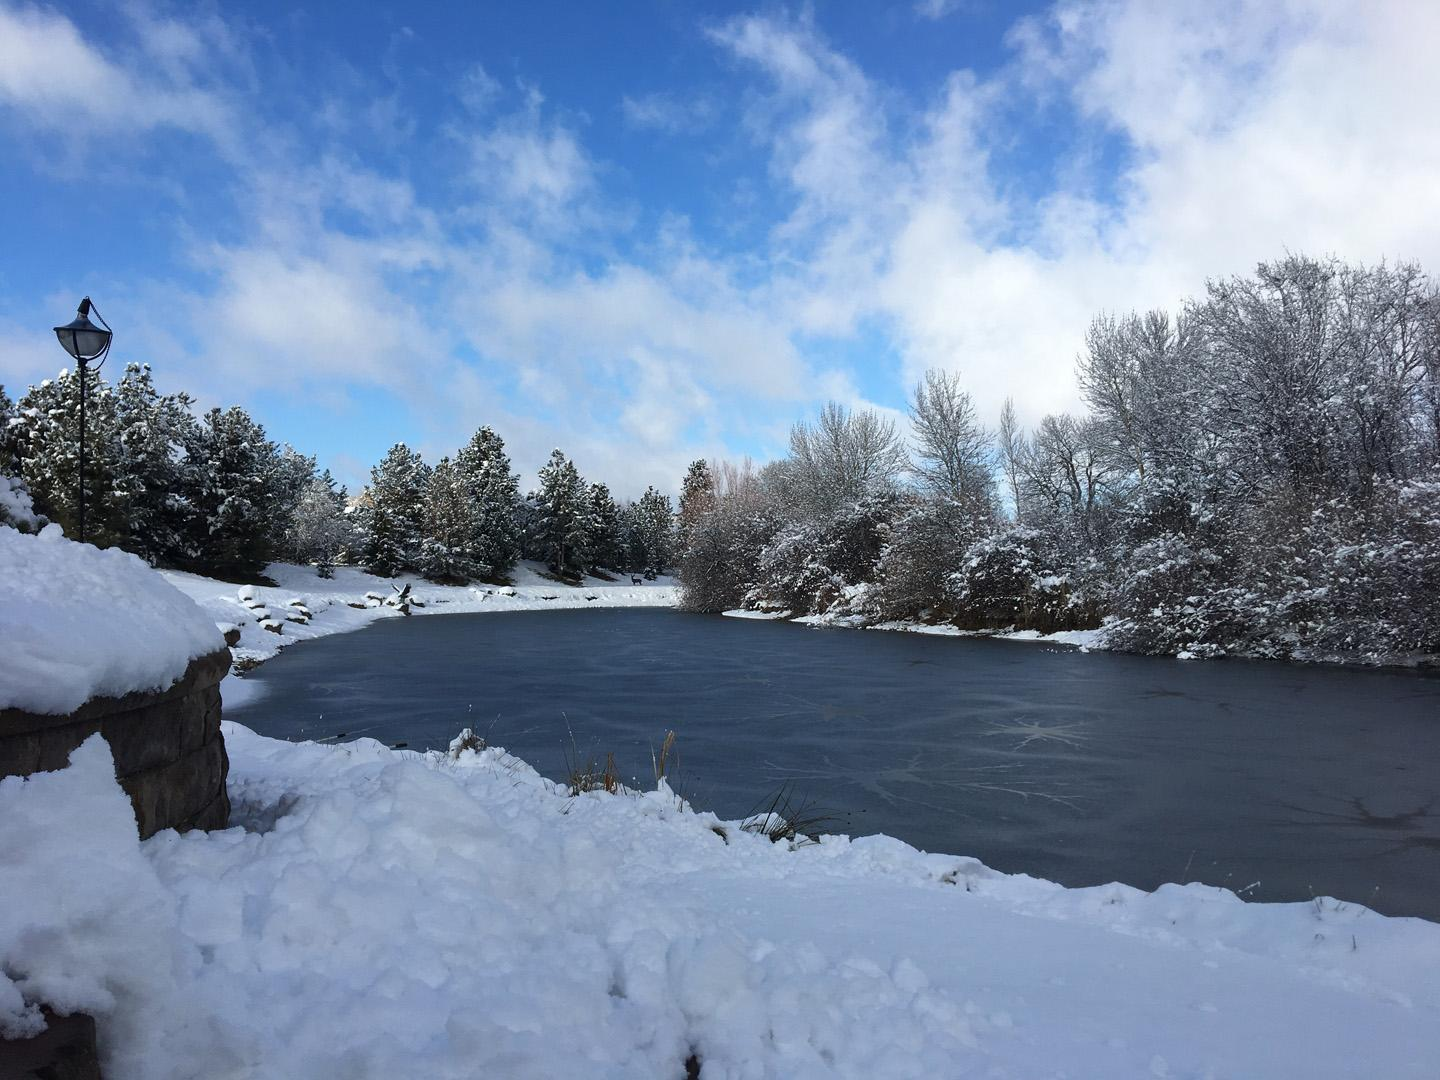 The Treasure Valley saw more snow Friday night. These are some images our viewers captured and shared with us. We love seeing your photos so keep them coming! Send them to us at: burst.com/IdahoNews